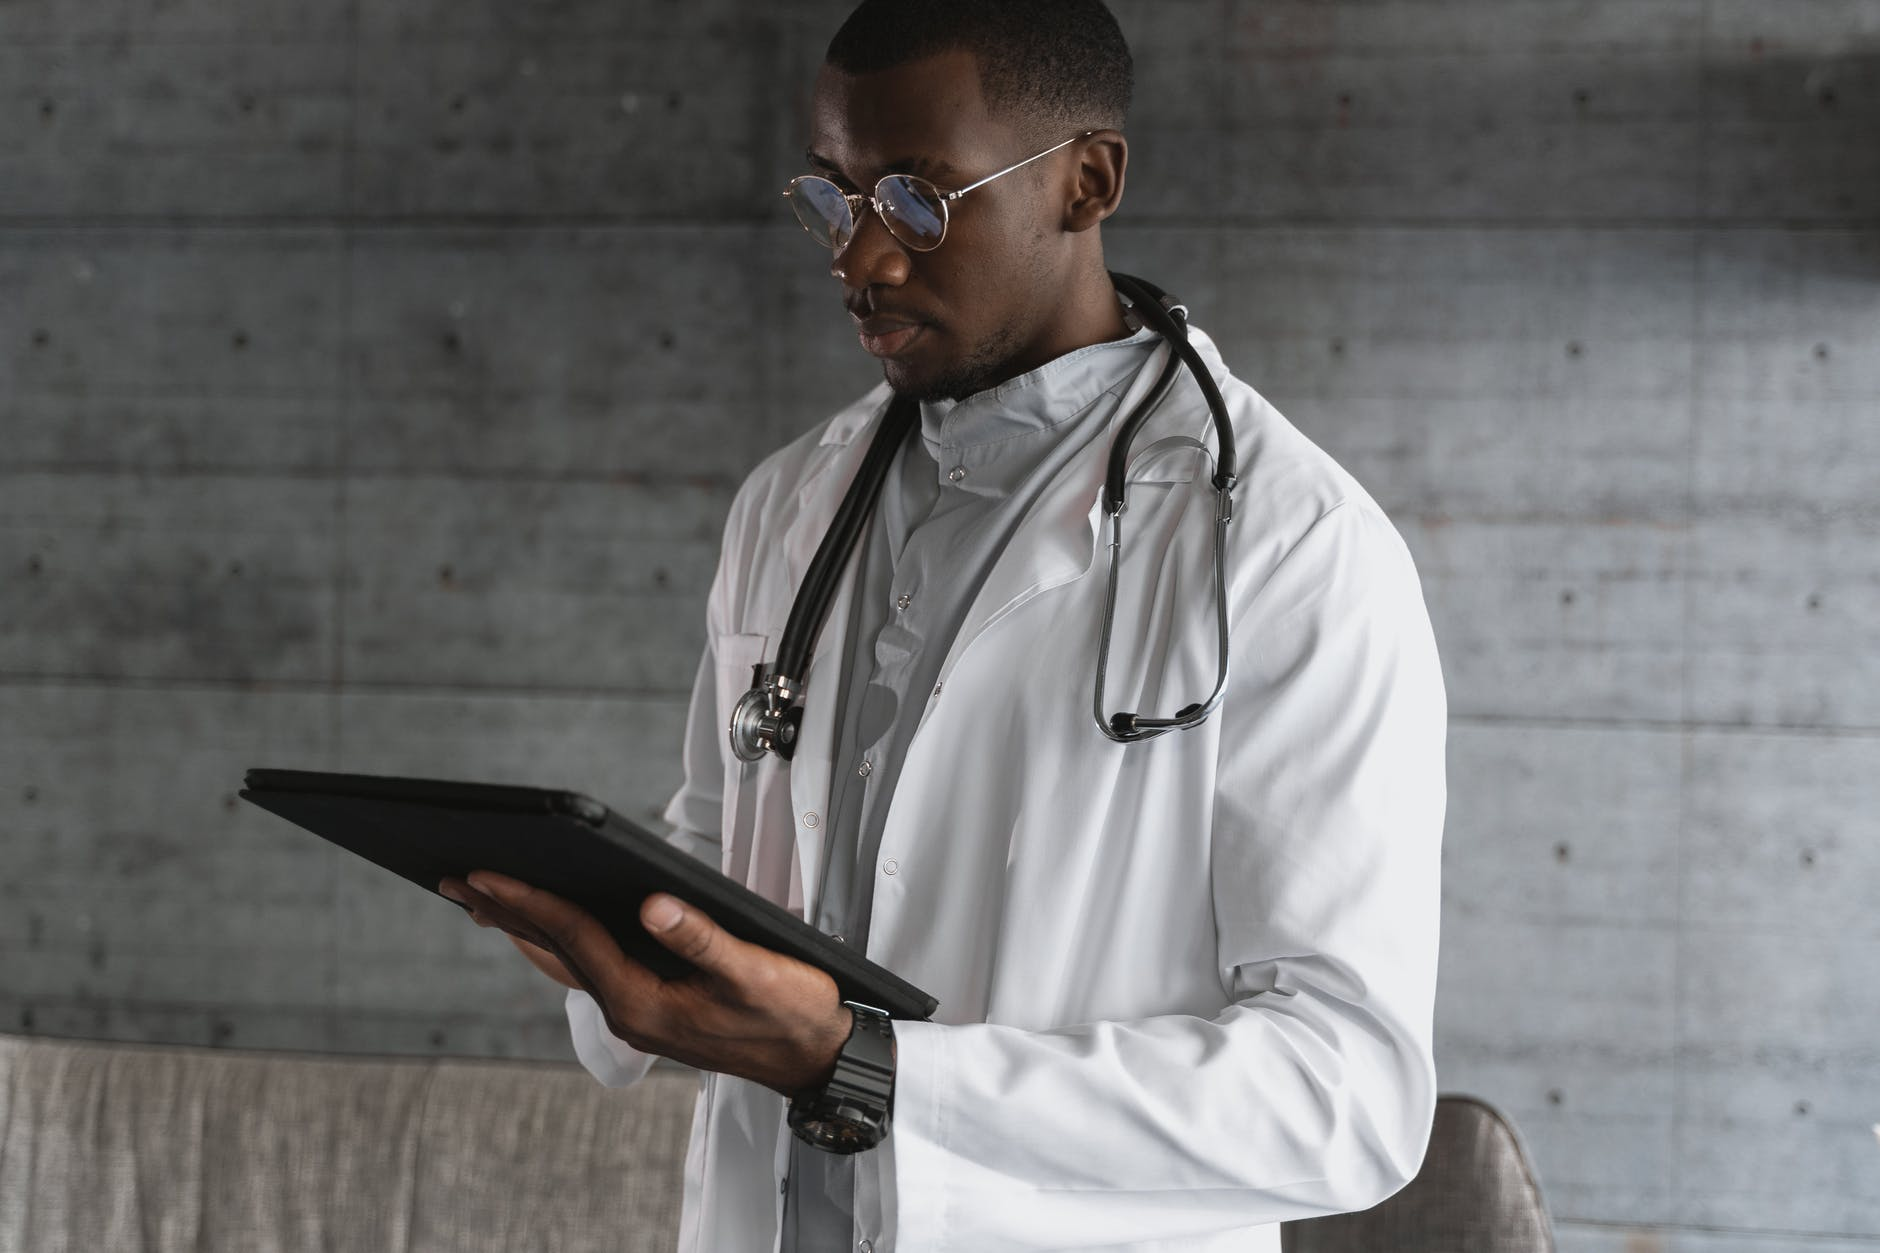 A doctor holding the black tablet.   Photo: Pexels